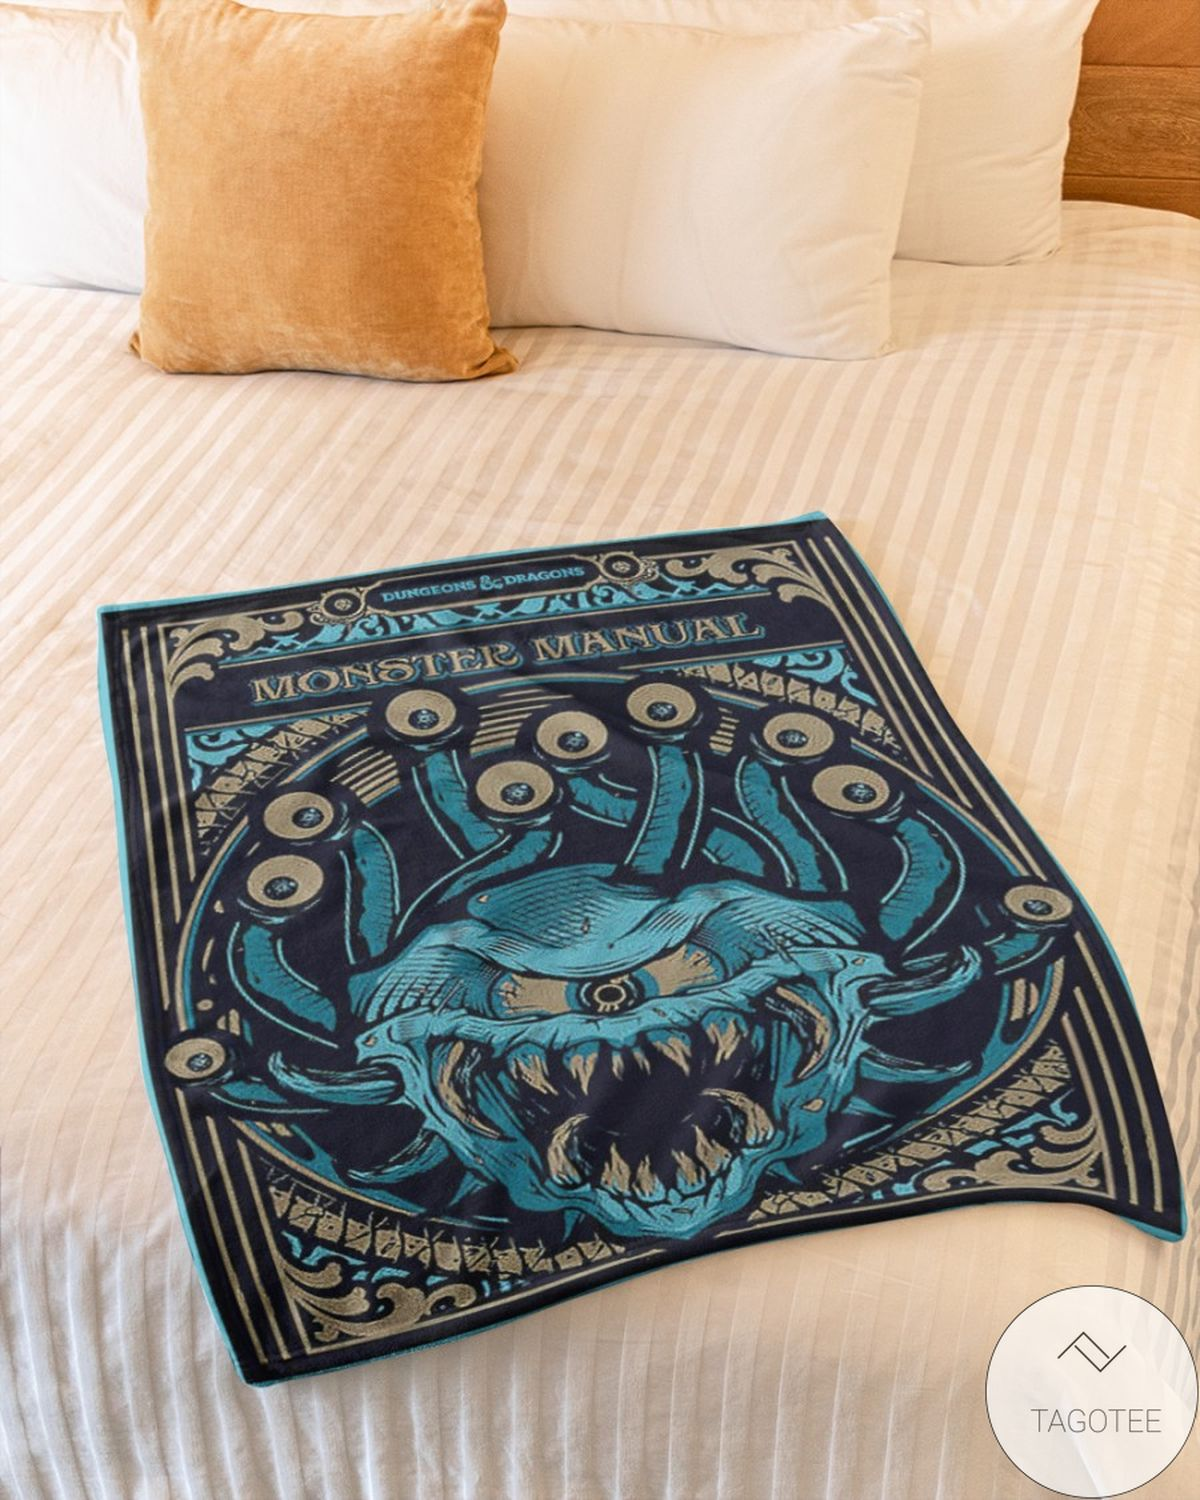 Absolutely Love Dungeons And Dragons Monster Manual Blanket